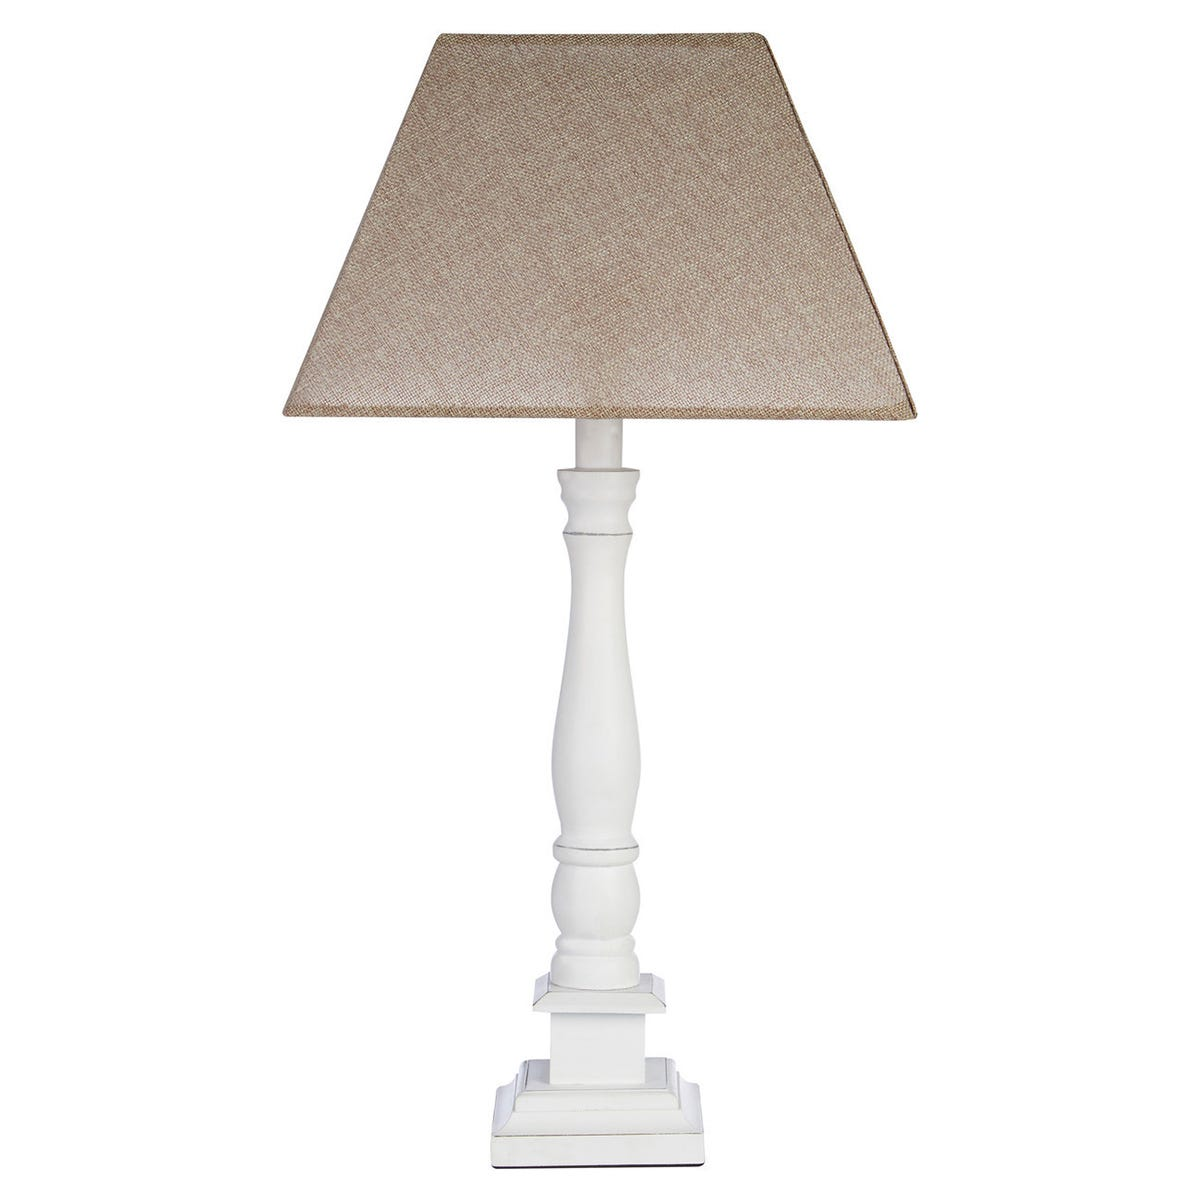 Interiors By Premier Table Lamp - White Wood Candlestick Base/Beige Shade